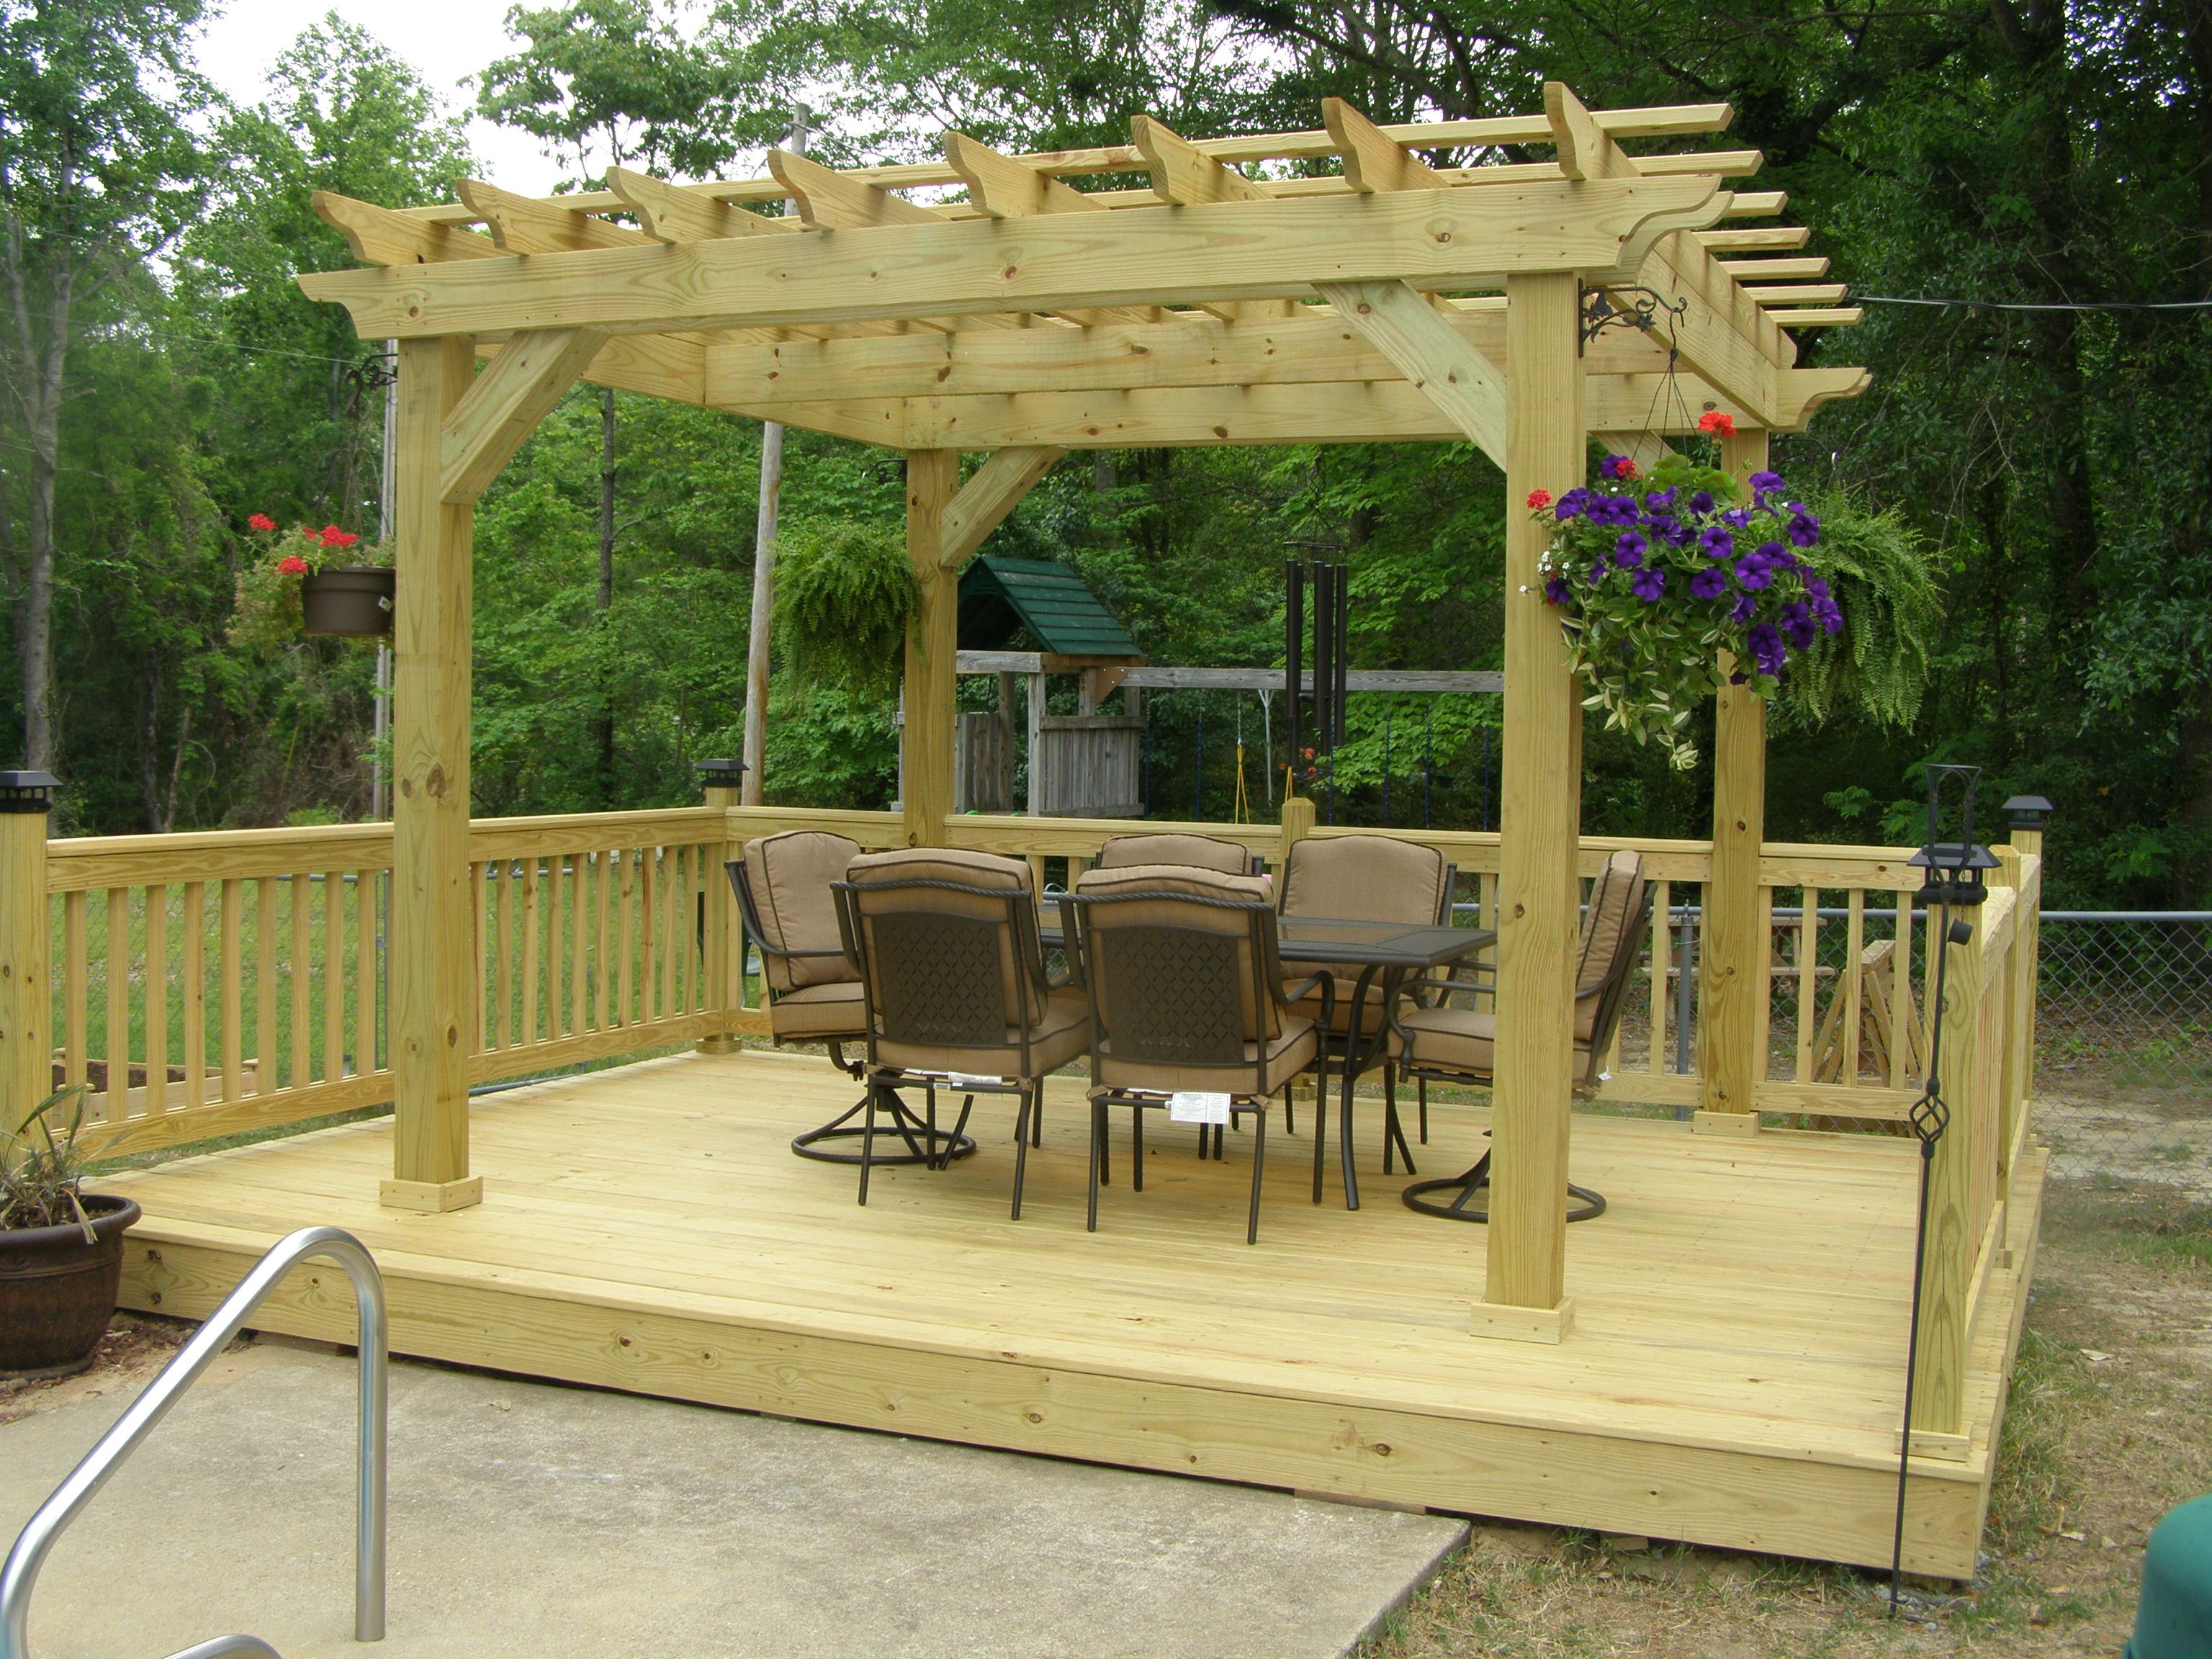 patios vegetable of and crafty gorgeous loversiq budget apartments designs inspiration garden gallery home a cheap ideas for our design creative smart balcony patio plain modern image on backyard